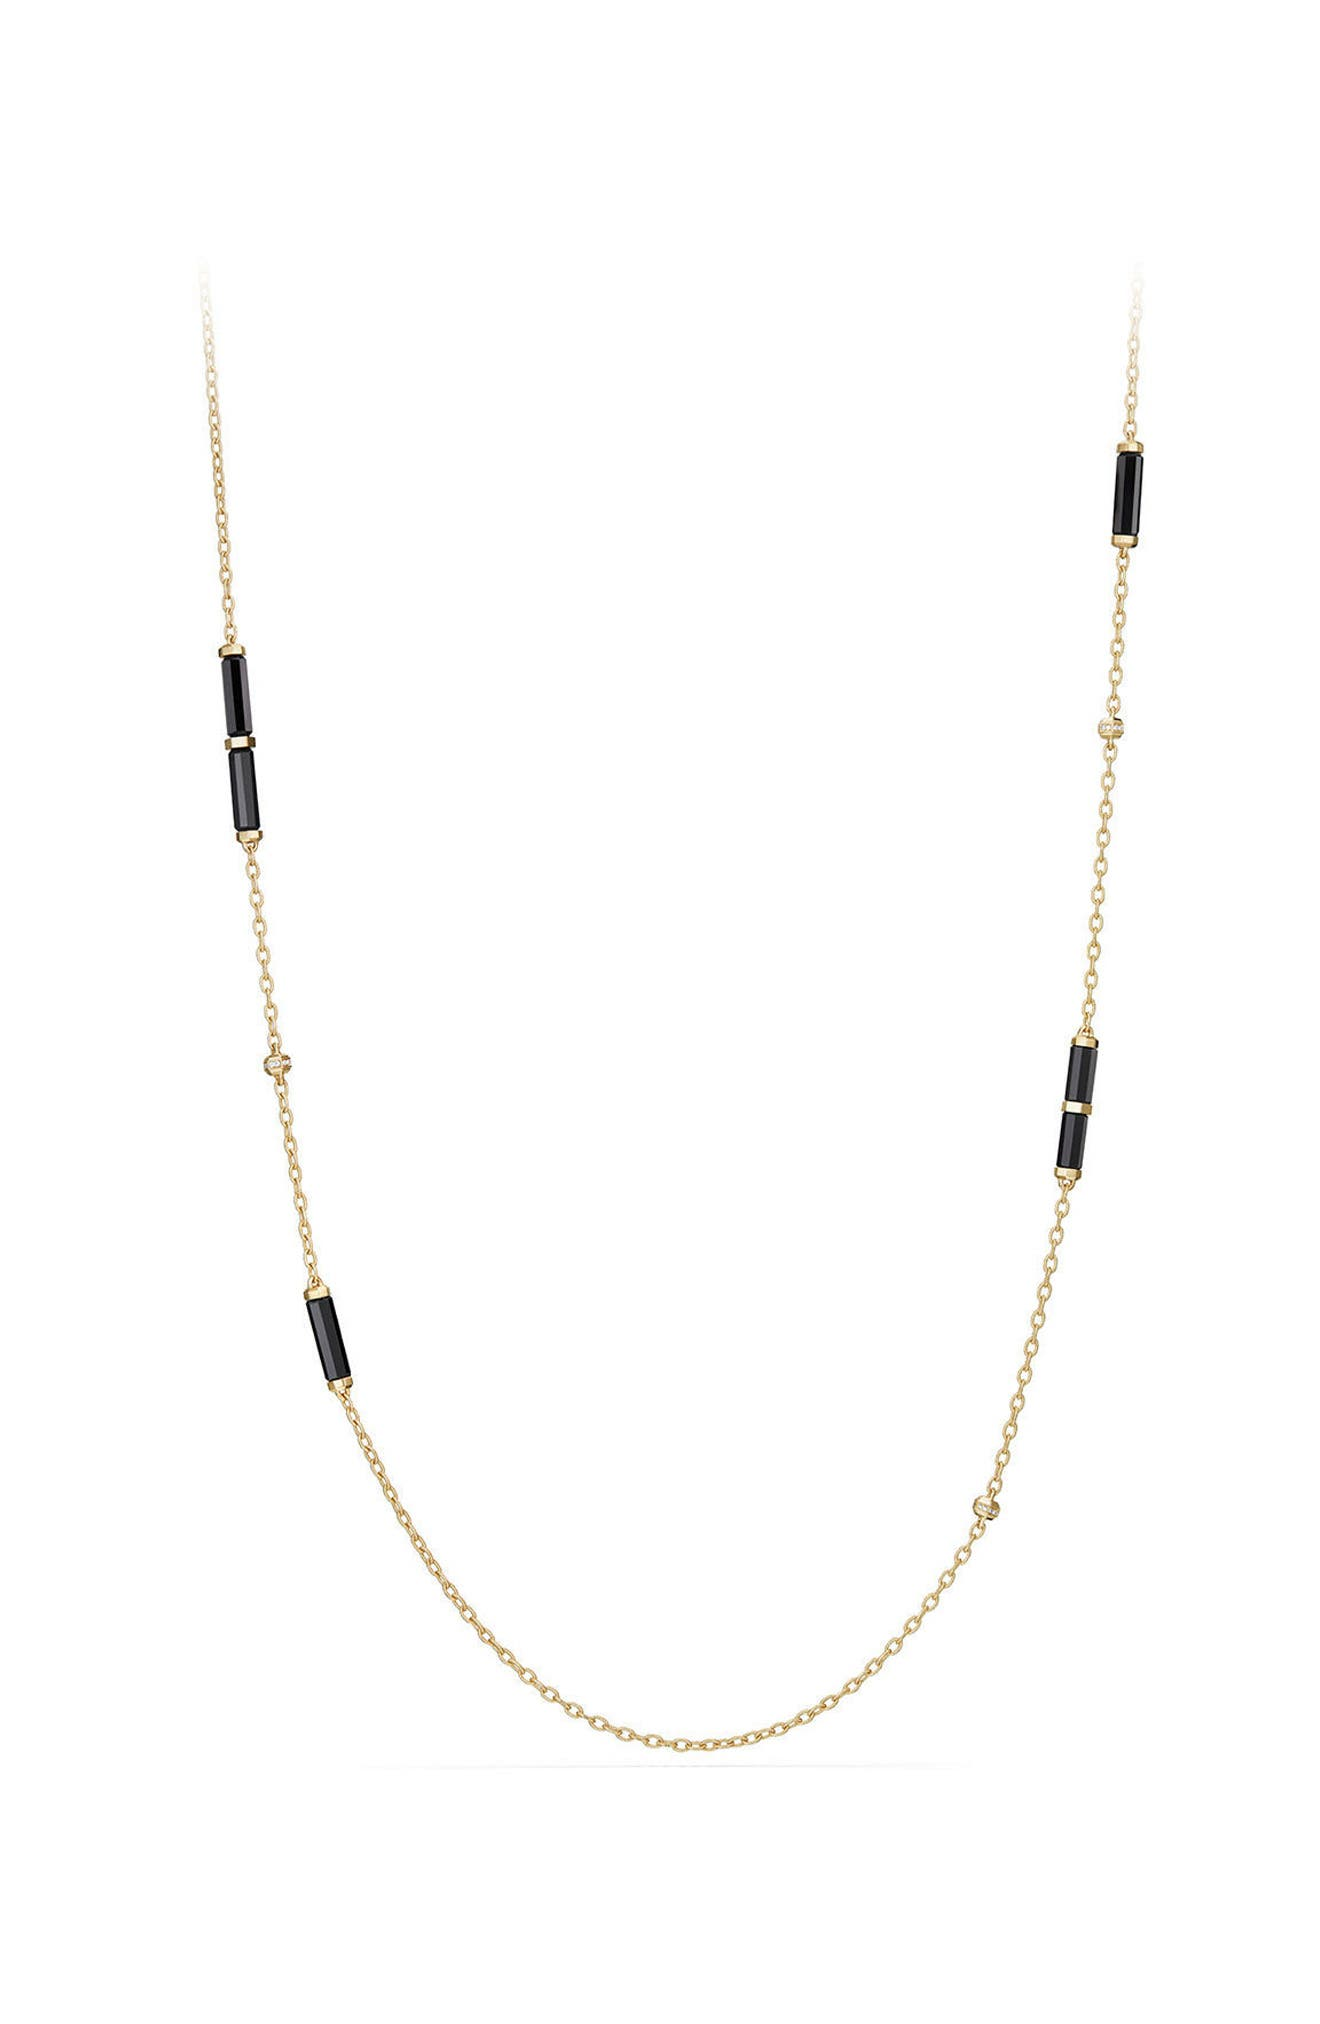 Barrels Long Station Necklace with Diamonds,                         Main,                         color, YELLOW GOLD